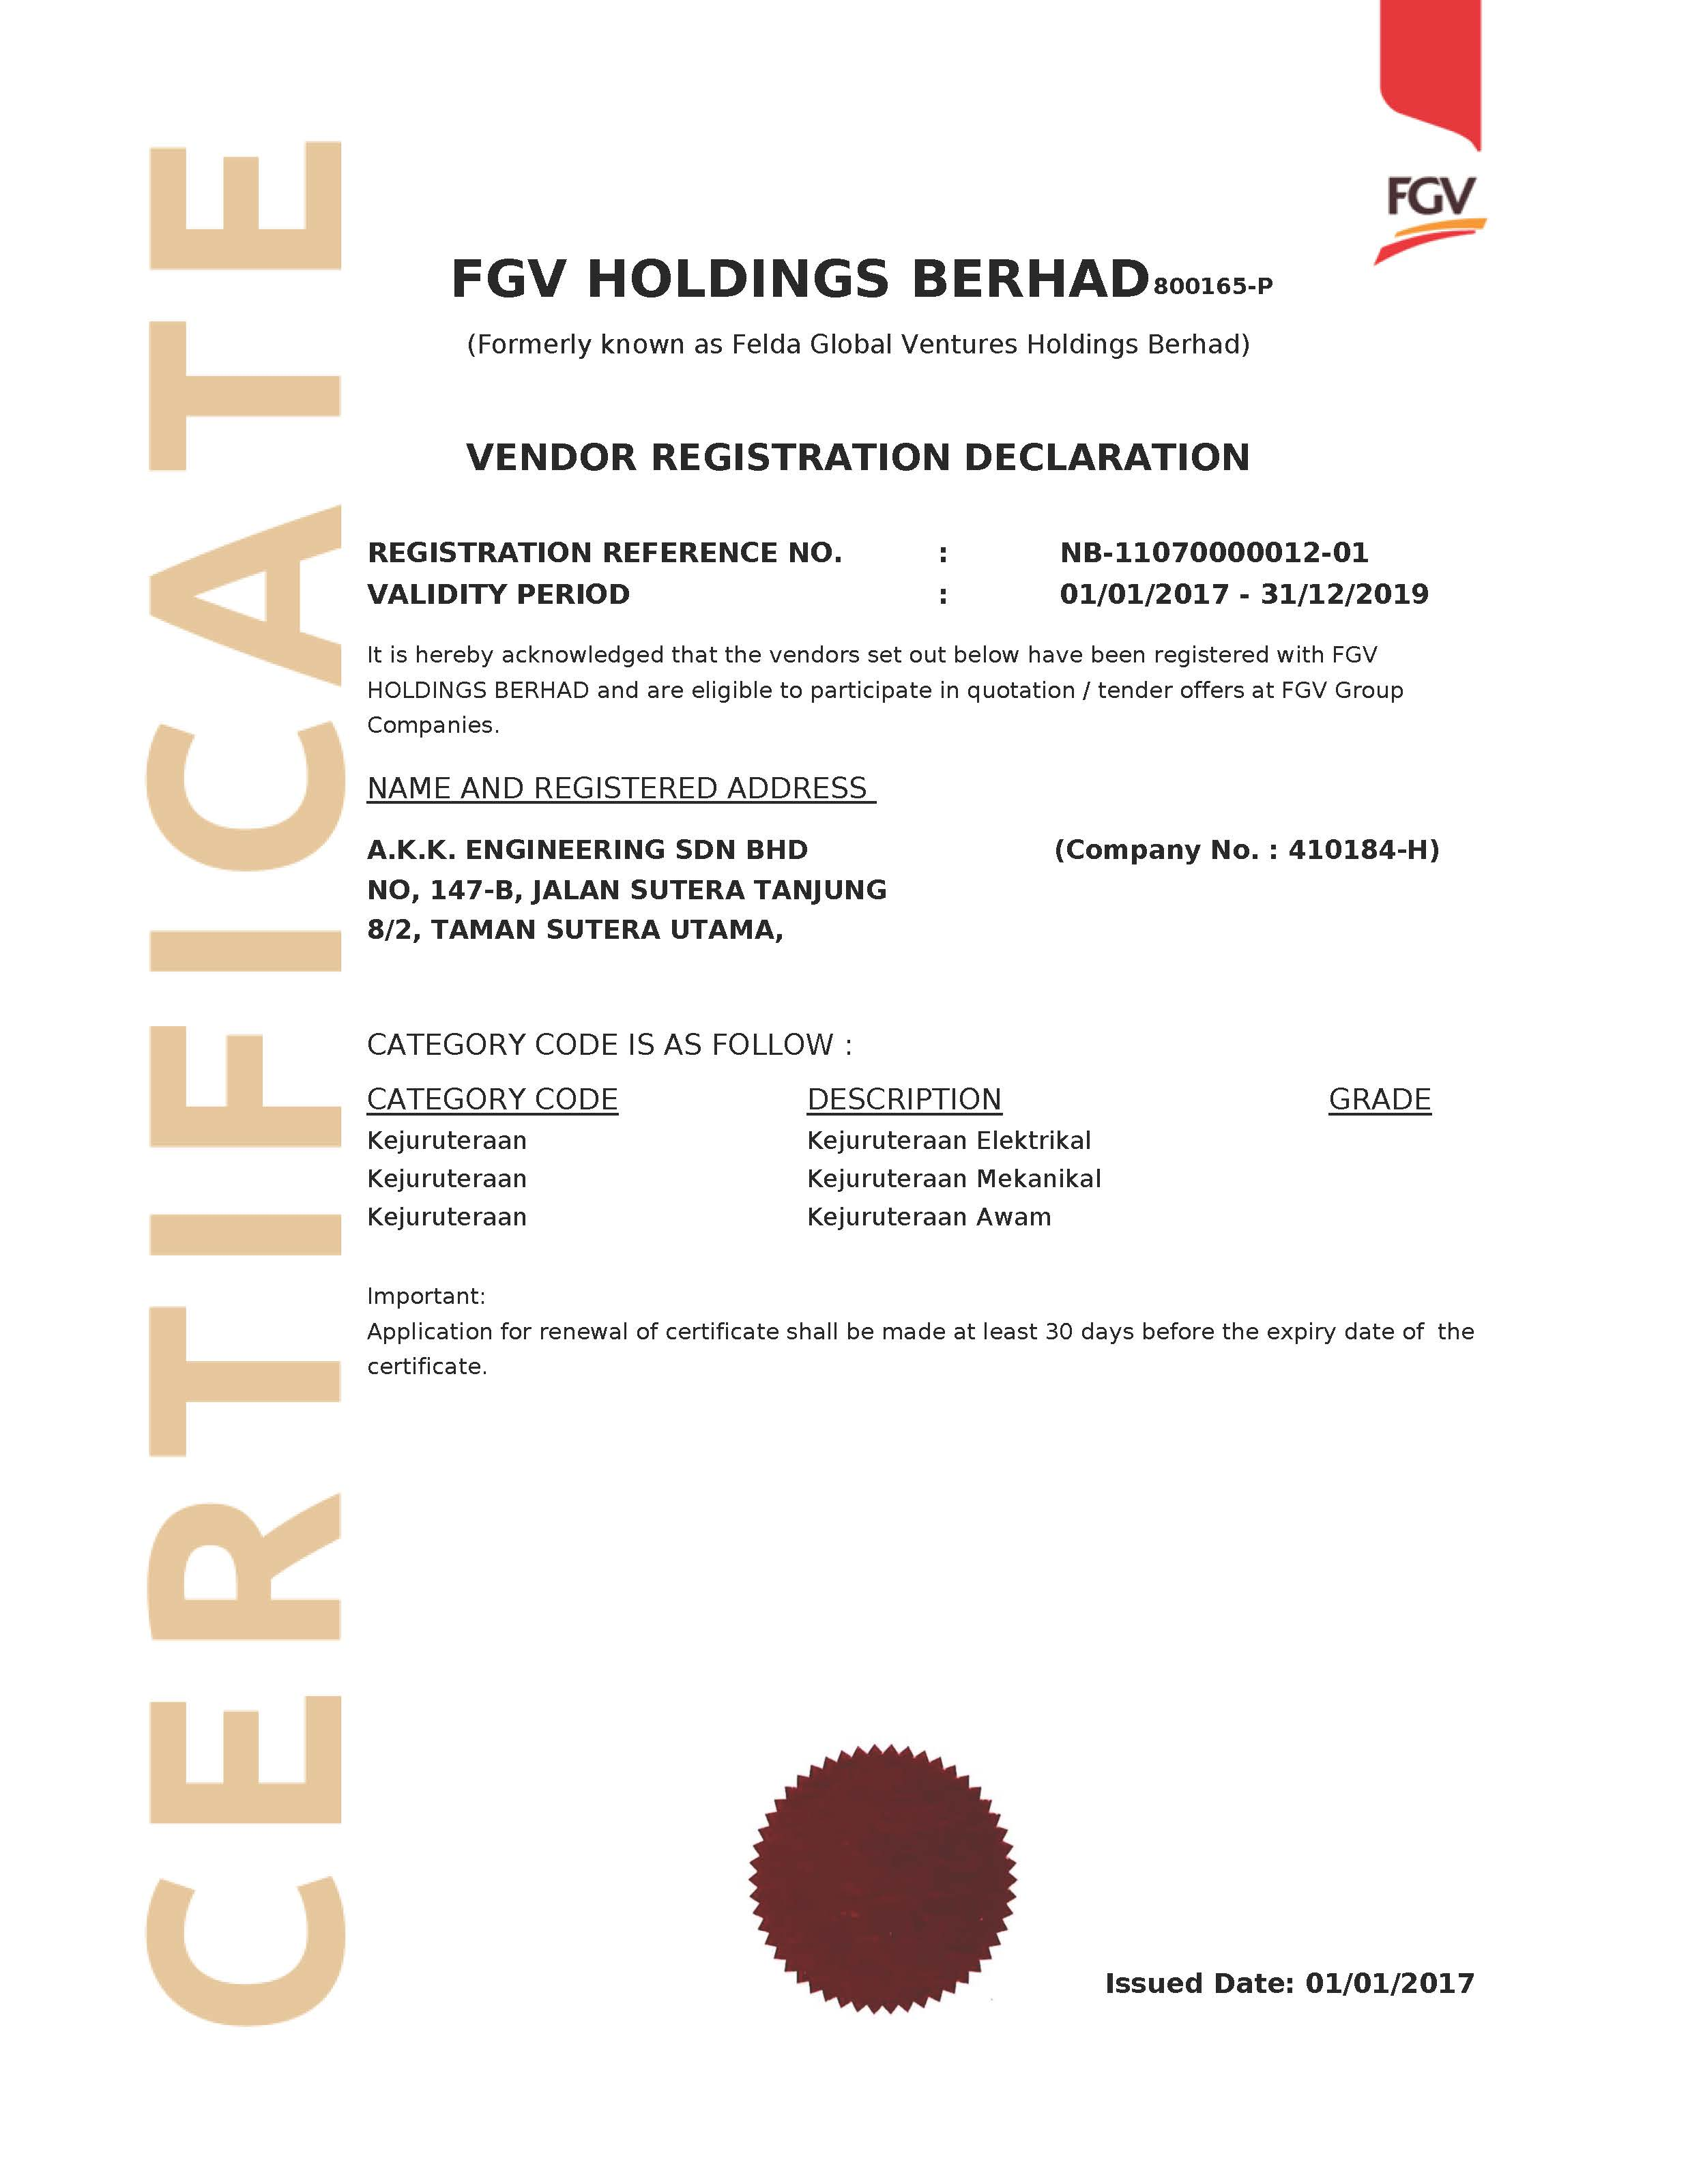 fgv-vendor-cert-2017-2019